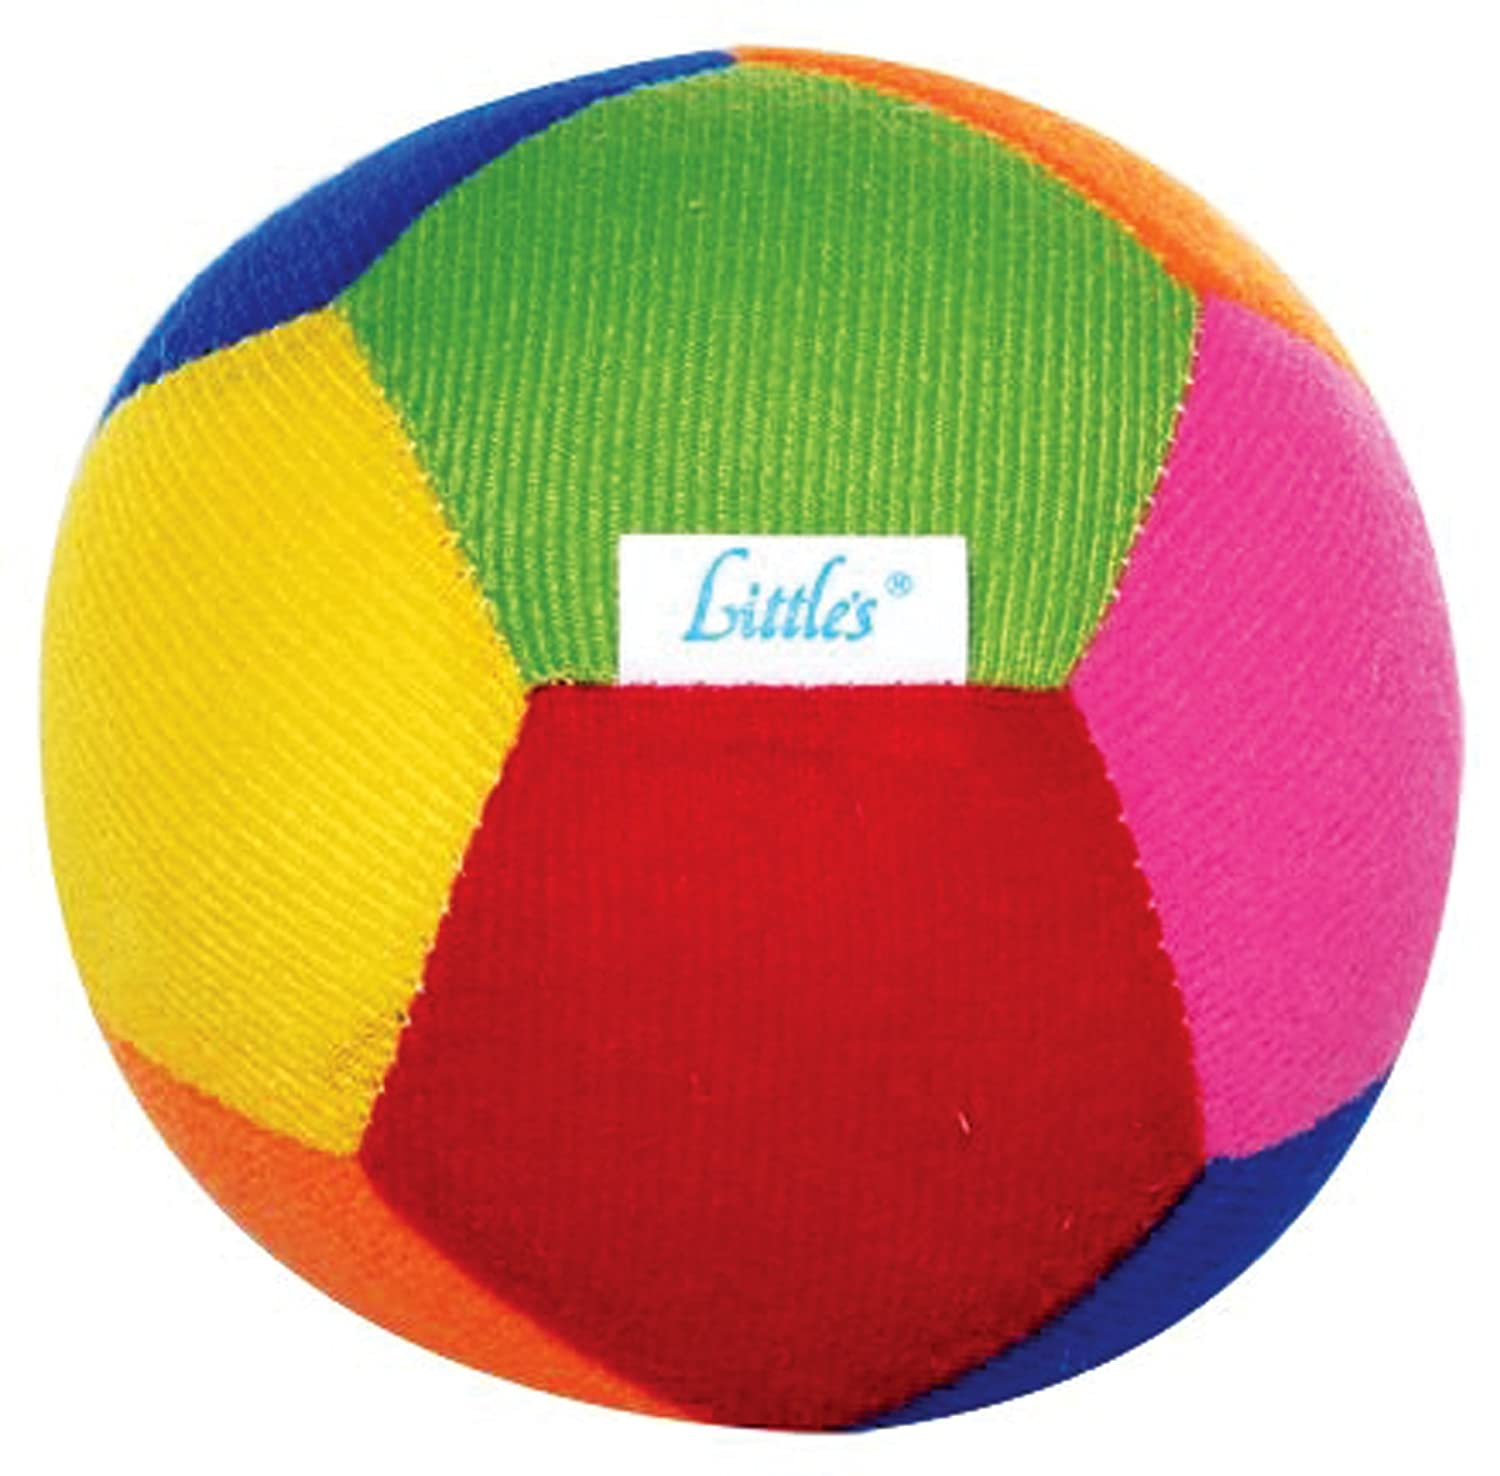 Buy Little s Baby Ball Multicolour line at Low Prices in India